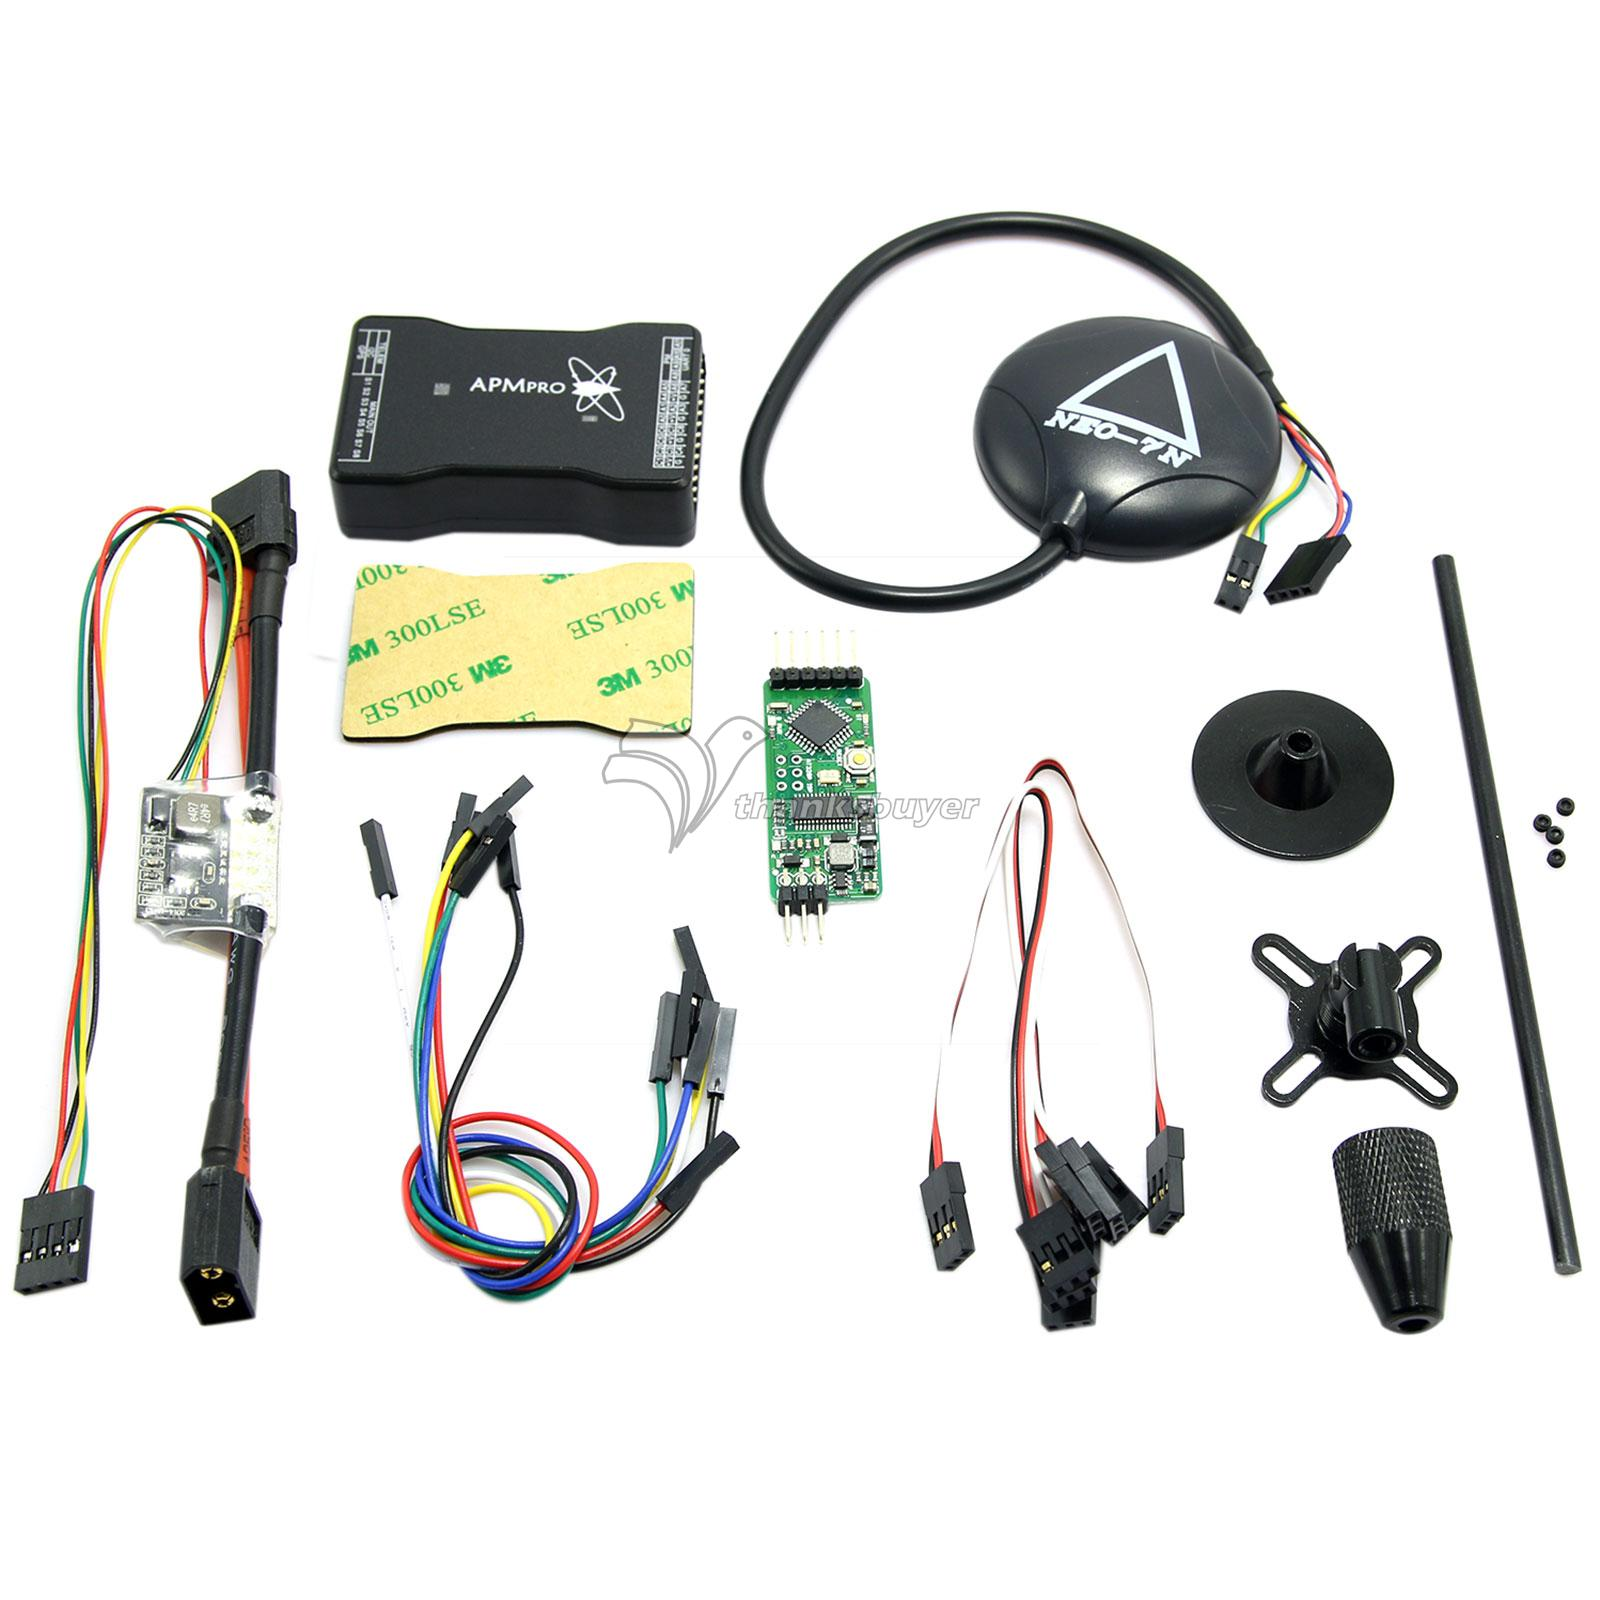 Mini APM Pro Flight Control Opensource Hardware with Neo-7N GPS & Power Module & Mini OSD for Multicopter Aircraft free shipping neo 6m ublox u blox gps module for mwc aeroquad flight control board